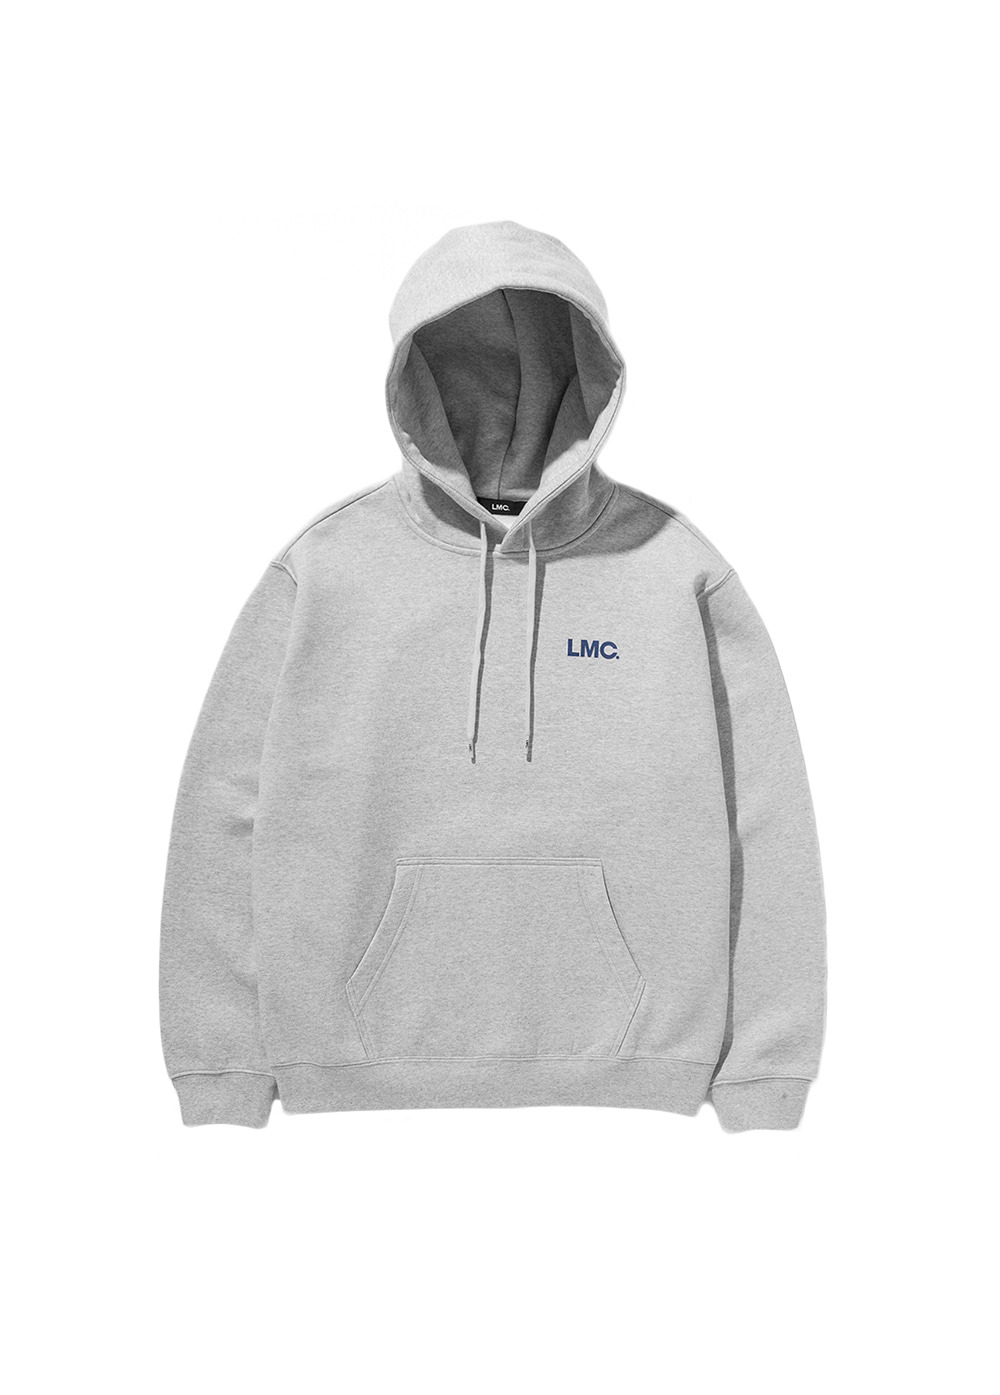 LMC OG HOODIE heather gray